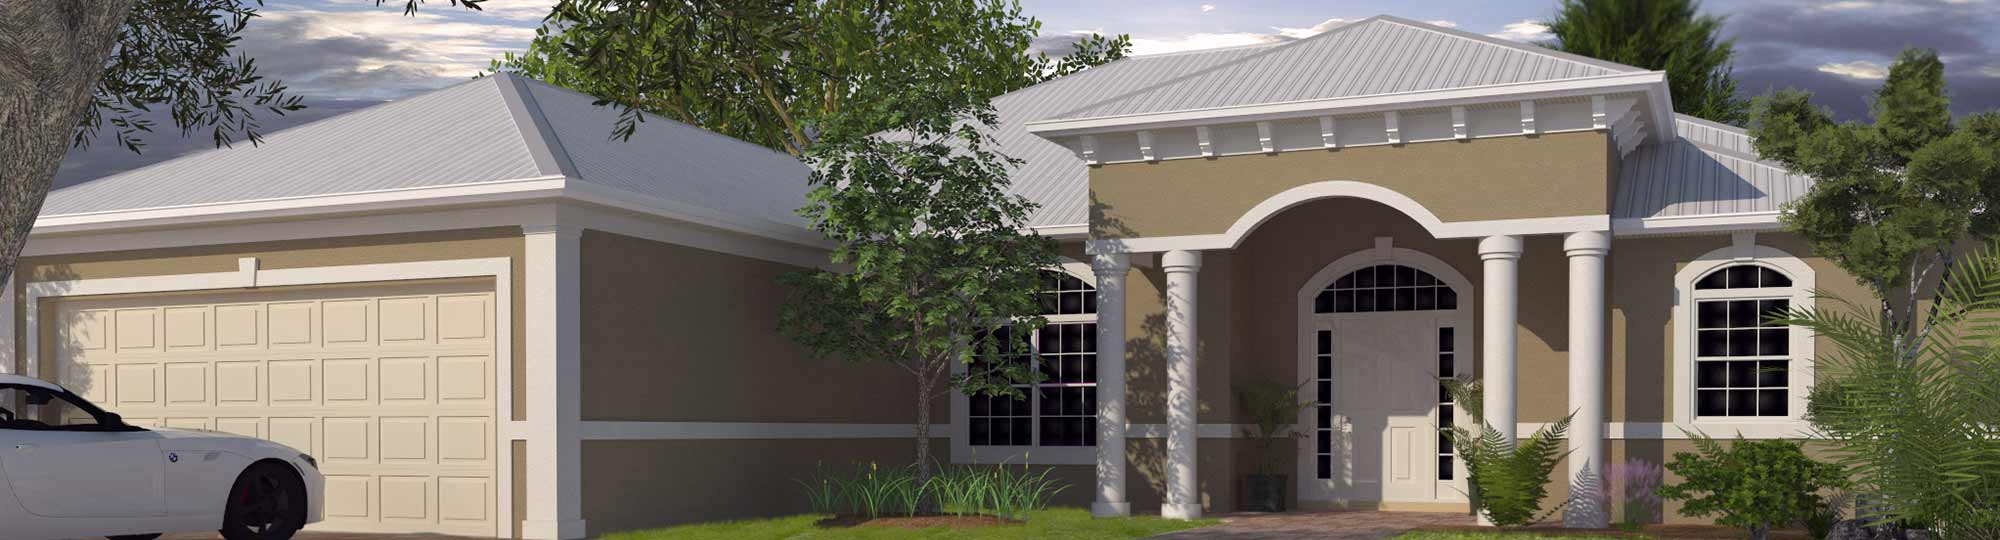 The Chatham - custom home in Port St Lucie Florida